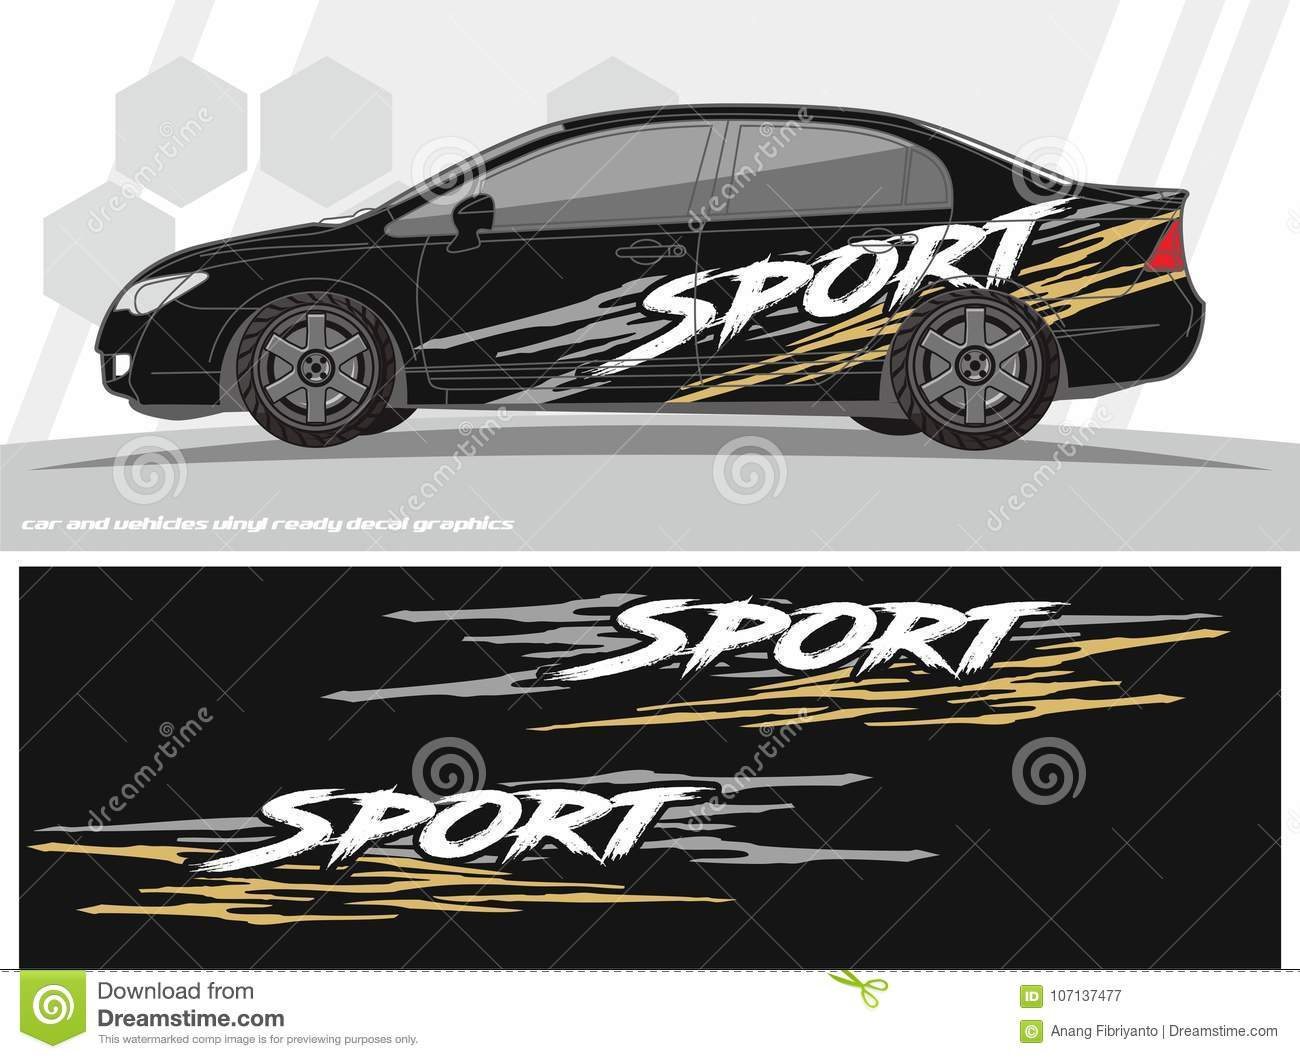 Sporty car and vehicles decal graphics kit designs ready to print and cut for vinyl stickers